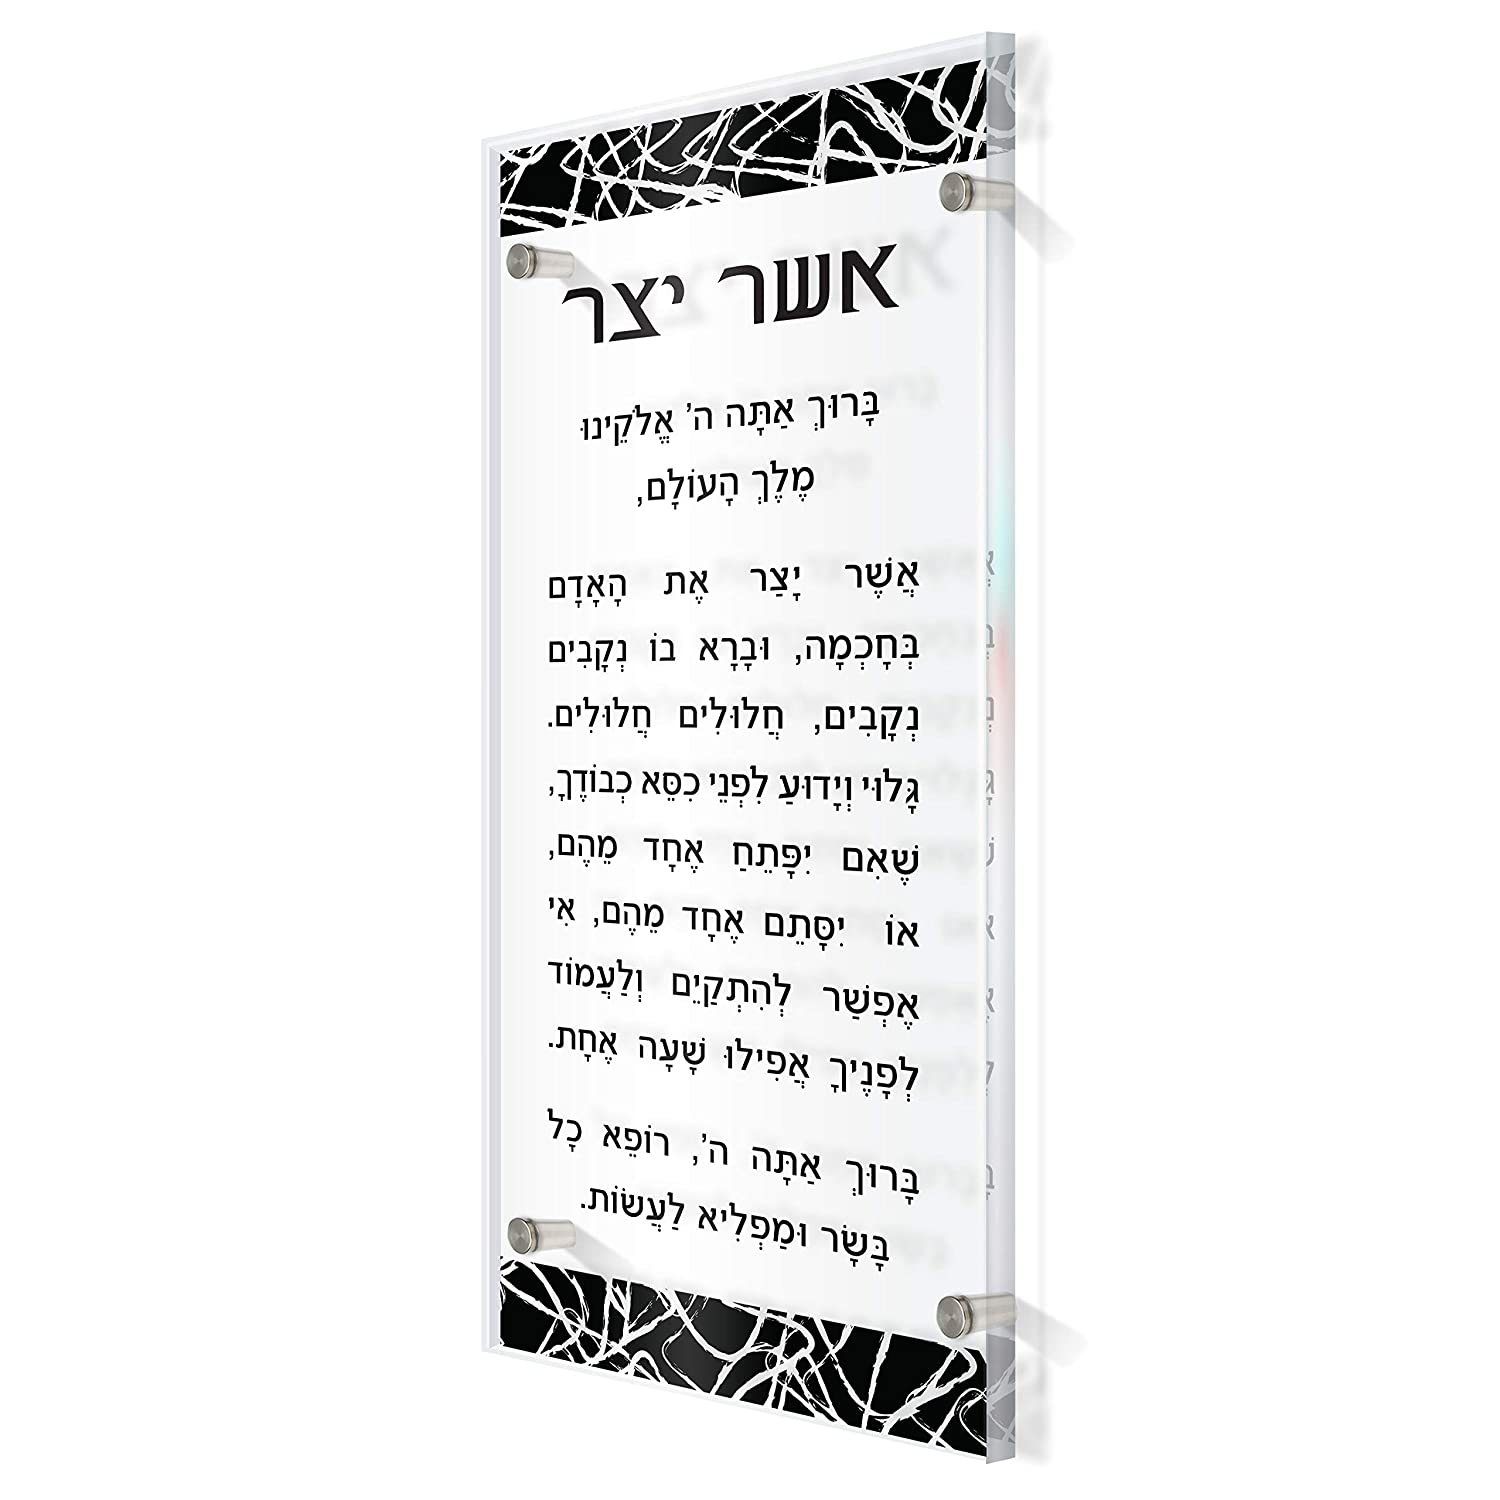 Presented Touch Lucite Acrylic Asher Yatzar Scribbles Design Clear Black